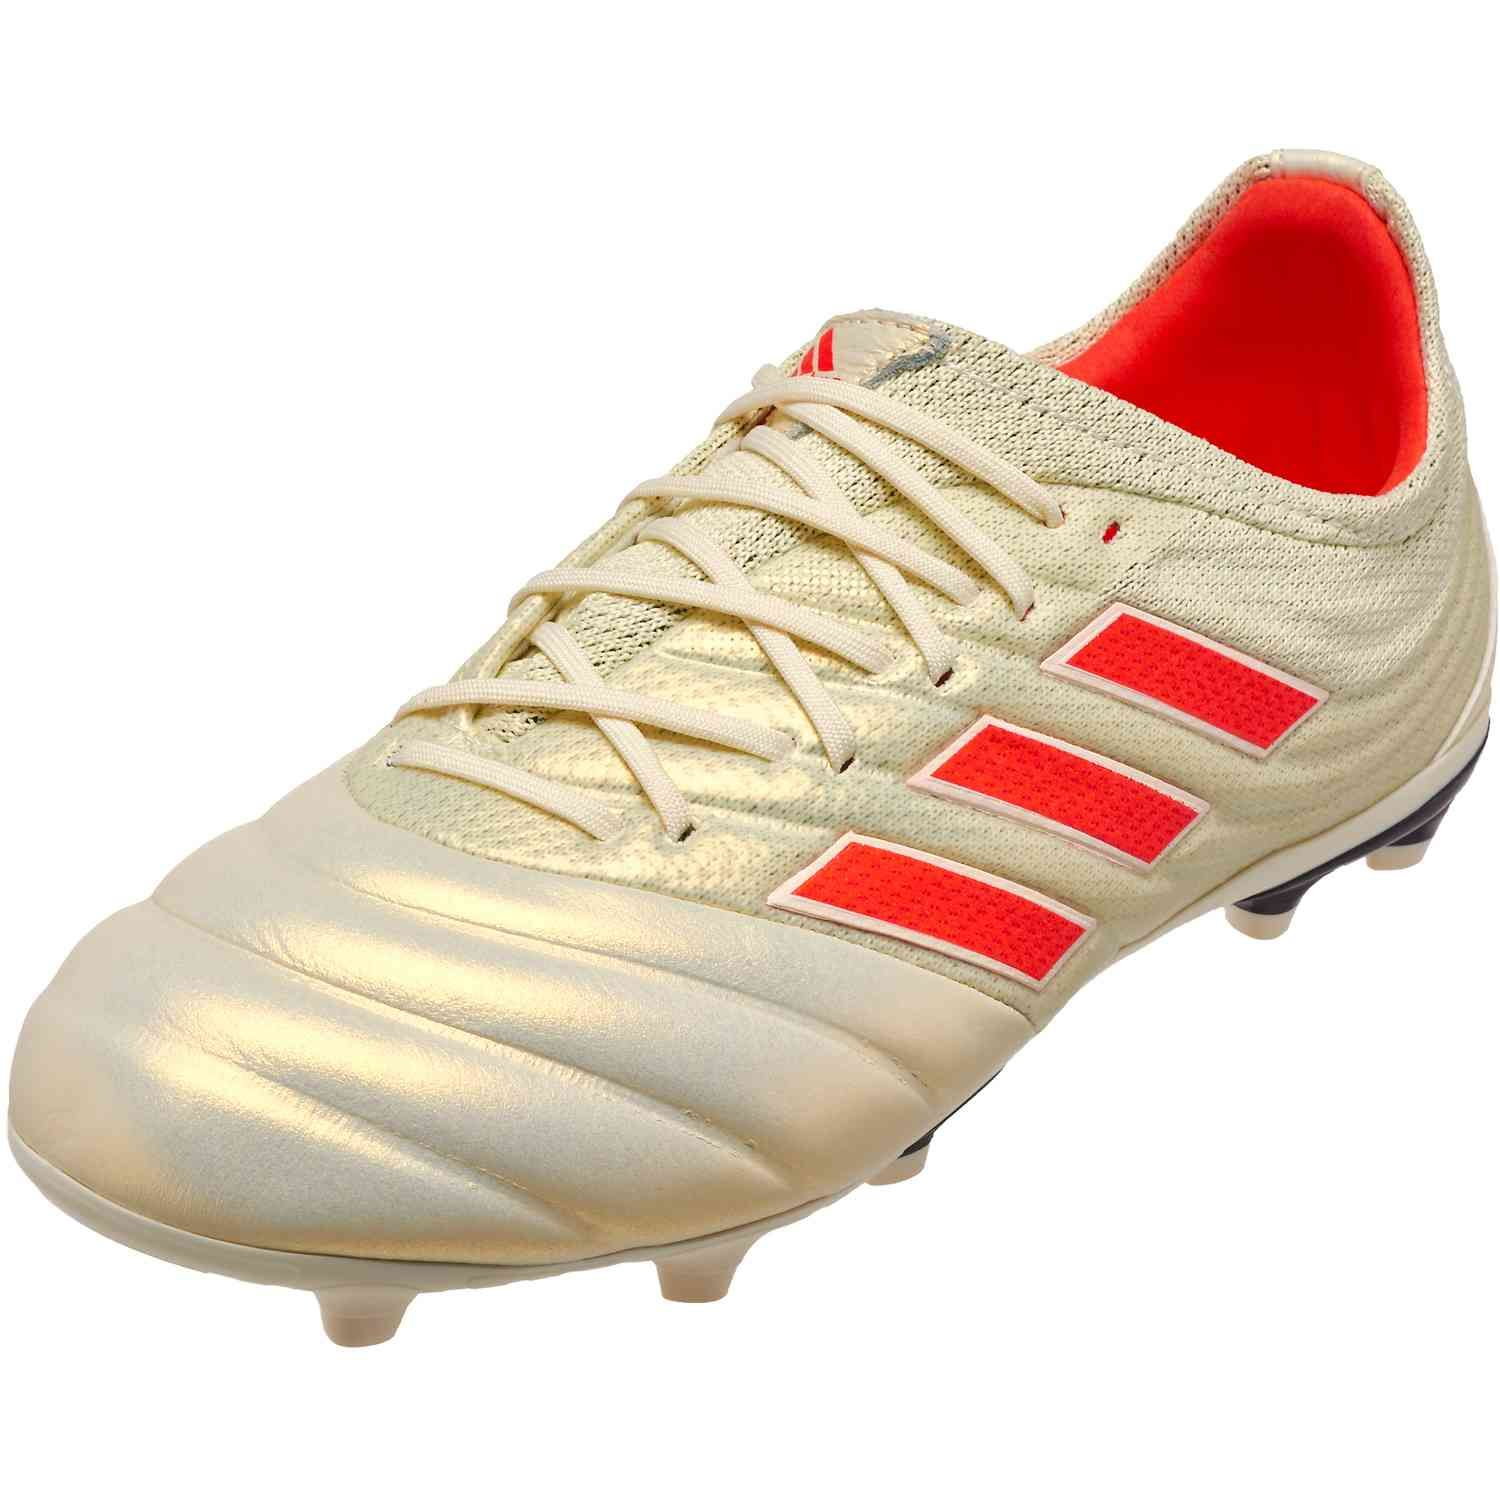 Youth Adidas Copa 19 1 Soccer Cleats Adidas Adidas Soccer Shoes